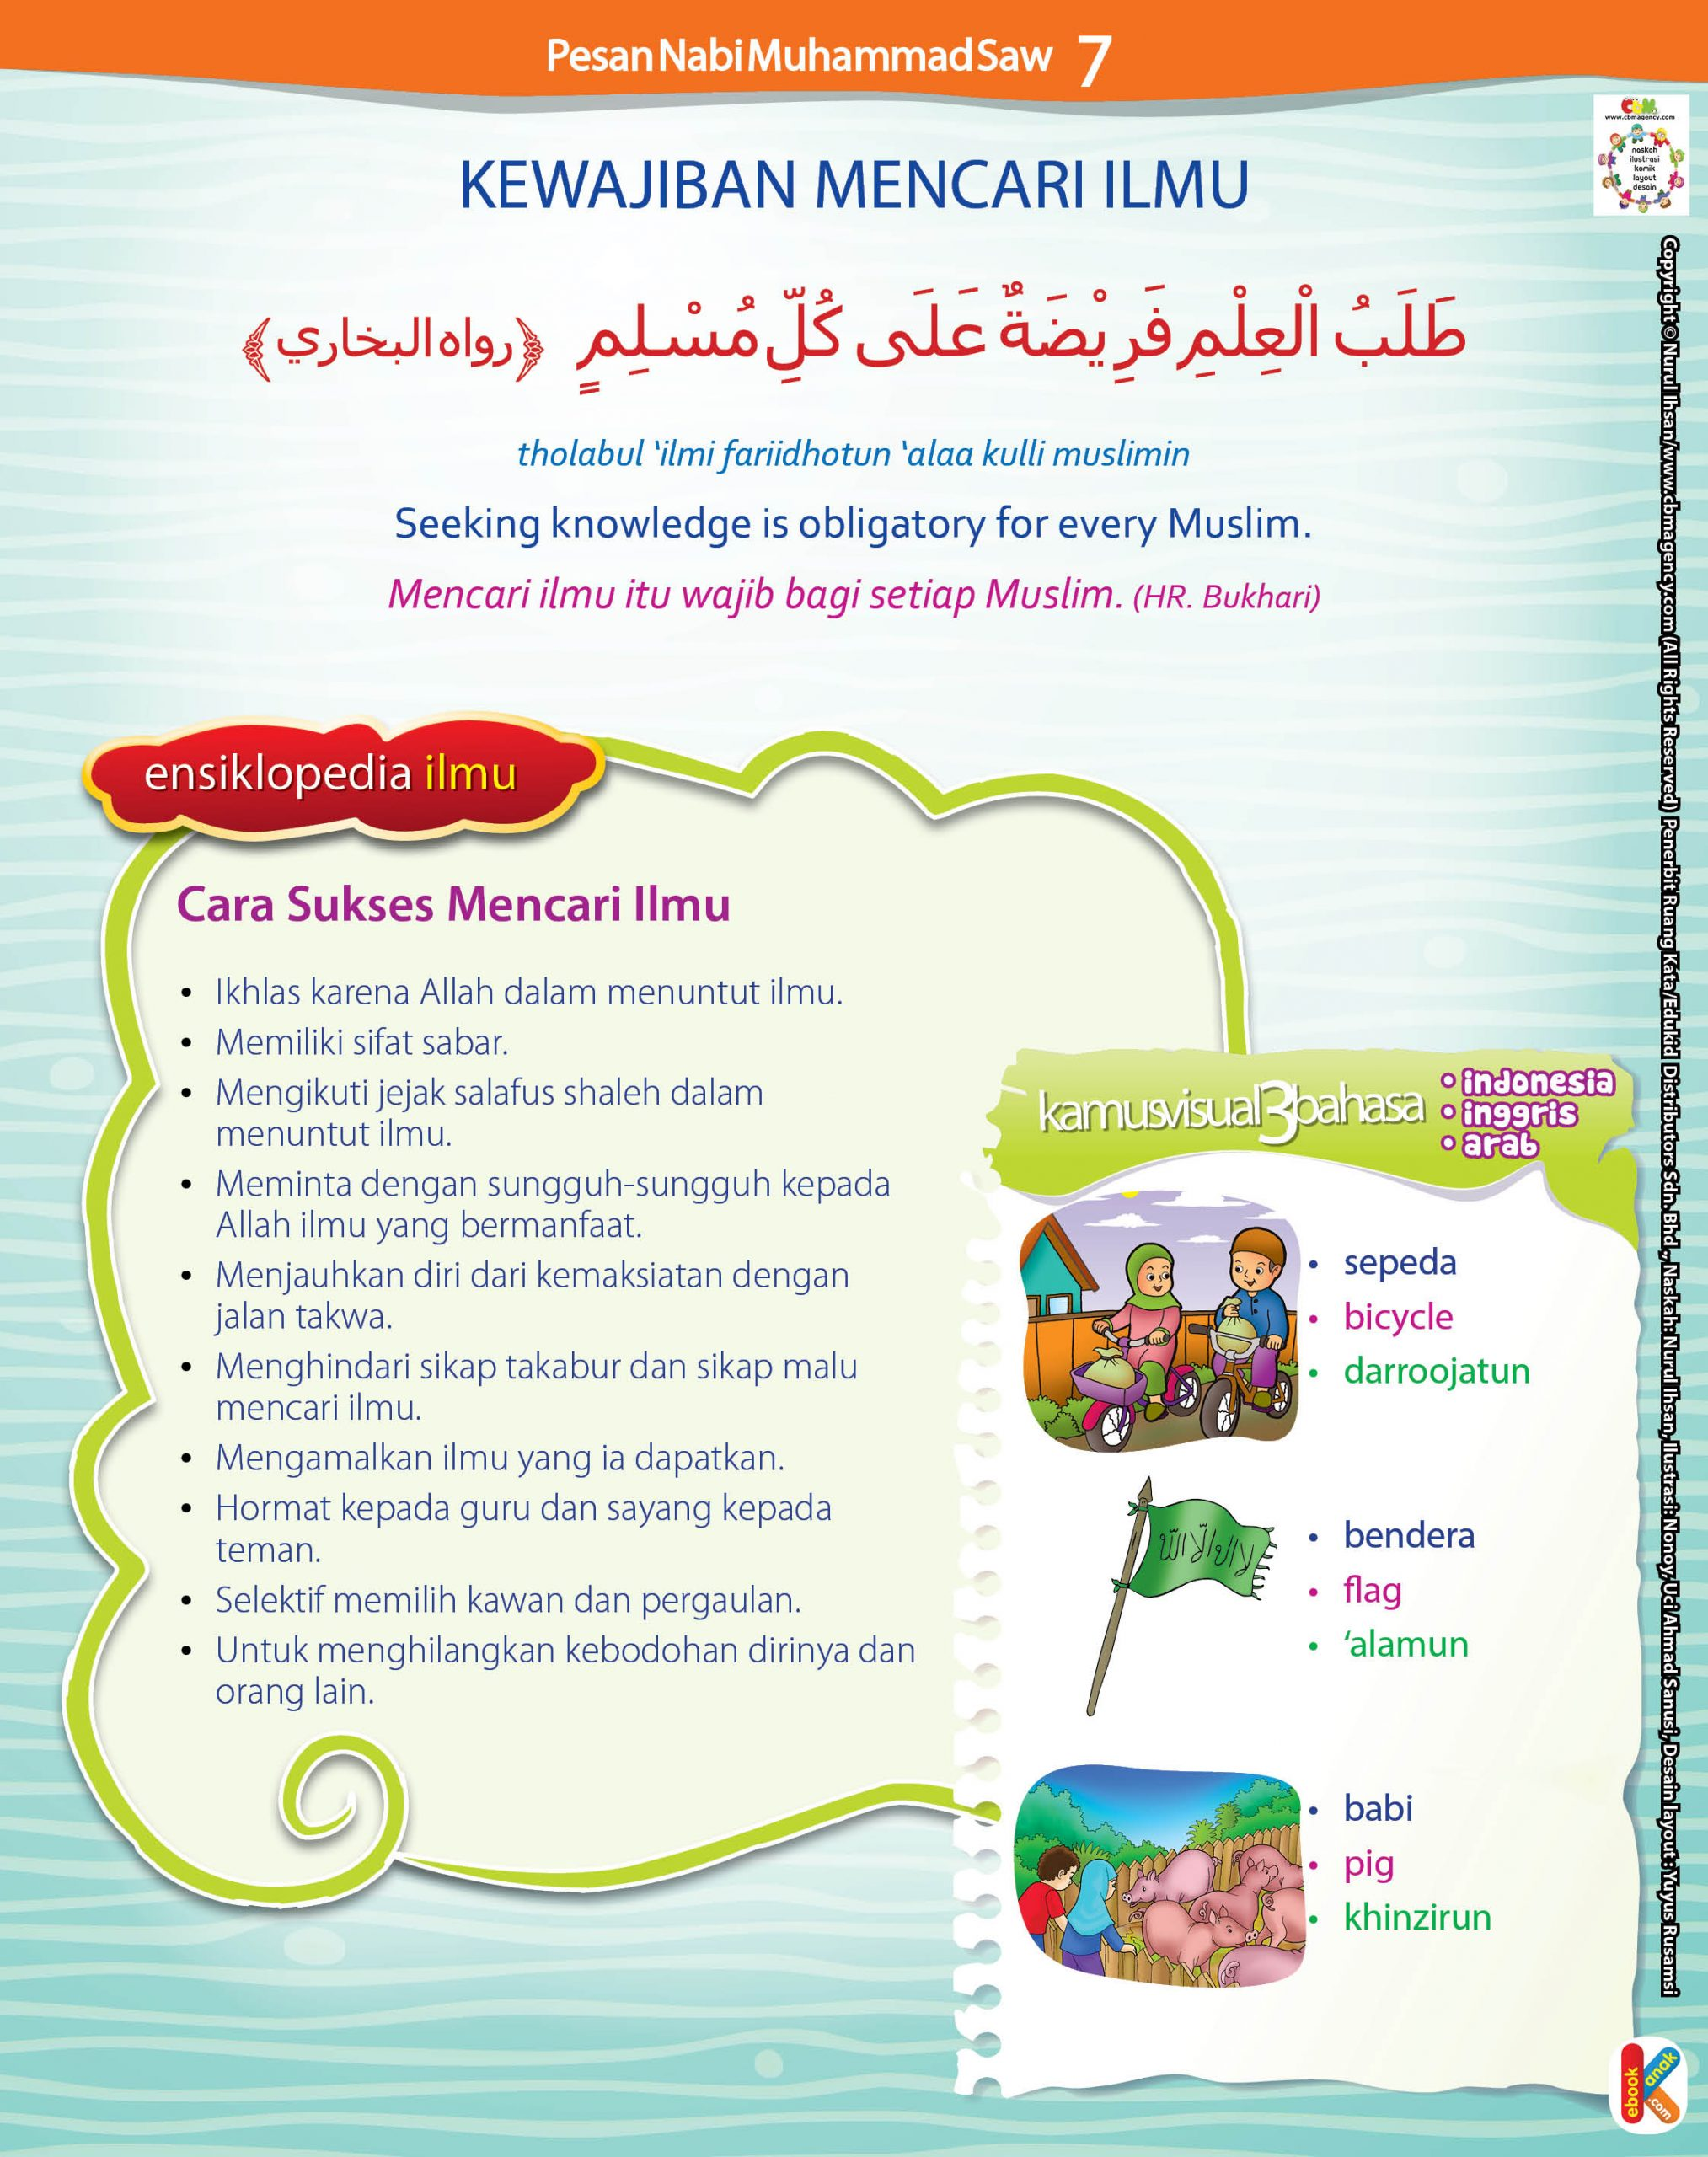 Seeking knowledge is obligatory for every Muslim.